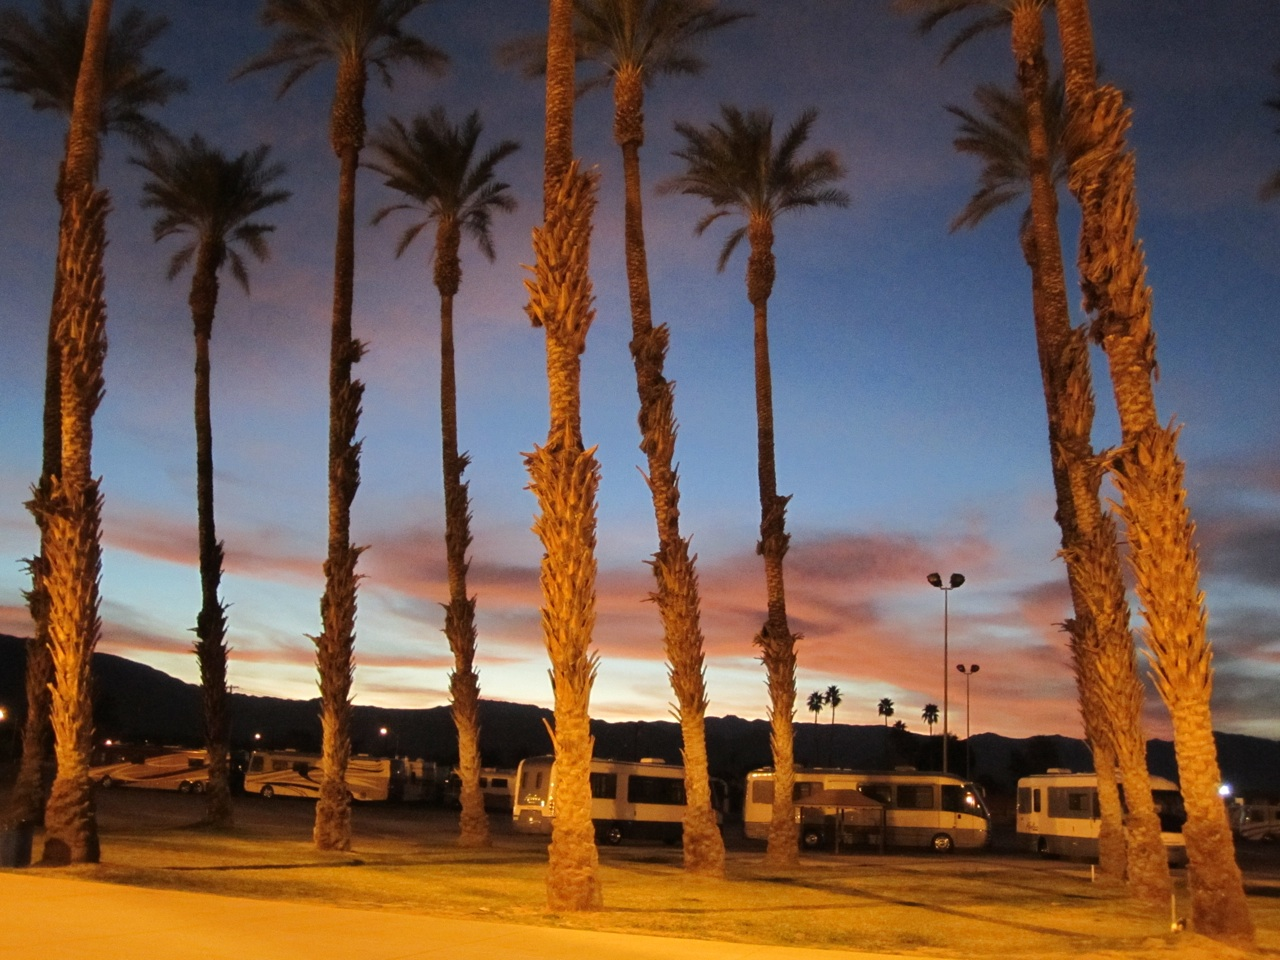 Sun Setting Behind The Mountains, At The Fairgrounds In Indio, CA